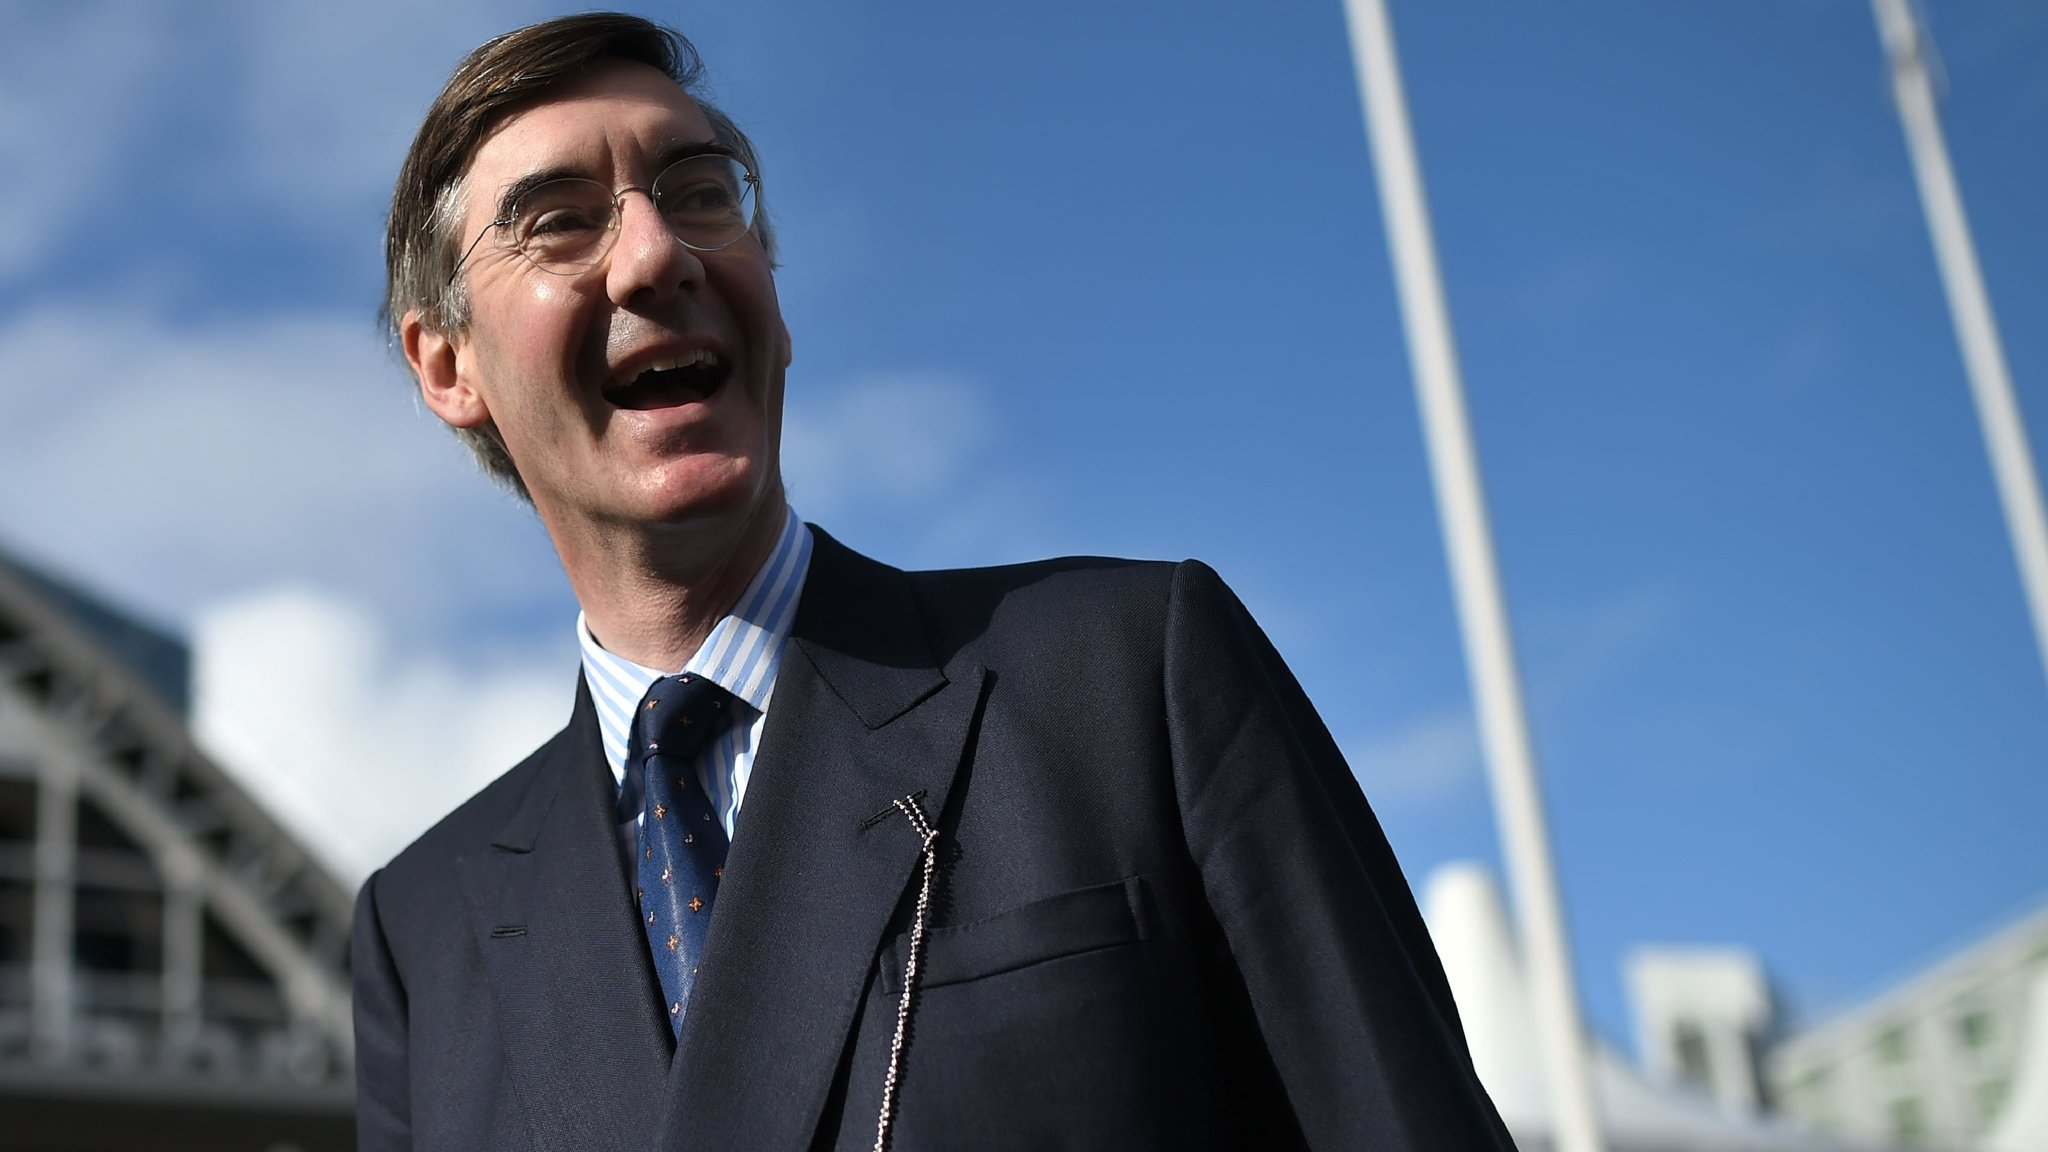 On Brexit, Jacob Rees-Mogg is right: Britain risks vassal status